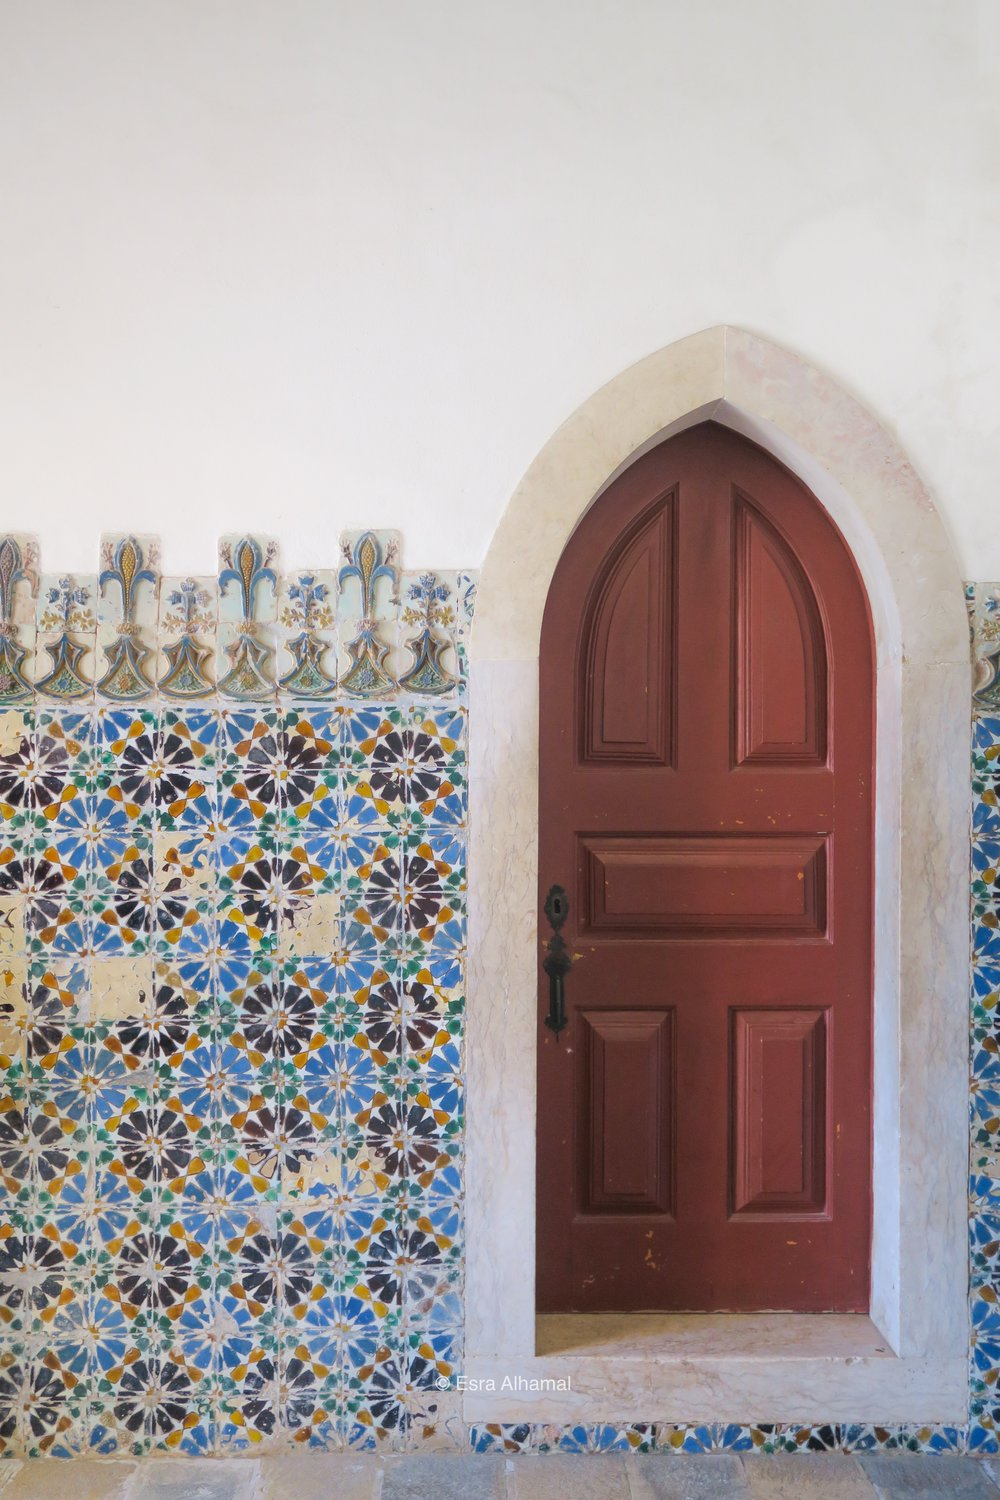 Geometric Islamic Patterns in Sintra Palace